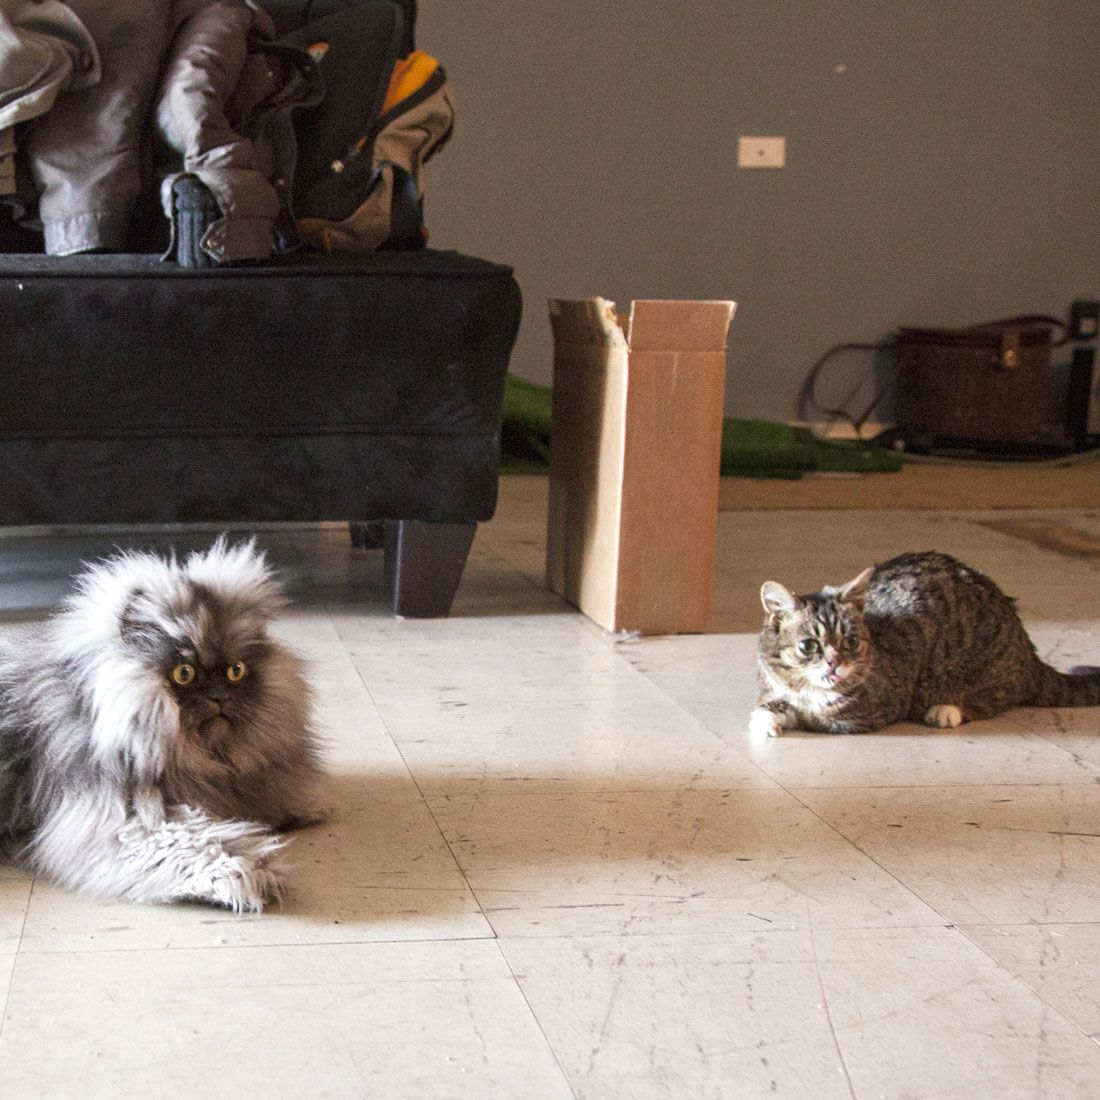 Lil' Bub AND Colonel Meow in the same room?! Yay! Grumpy